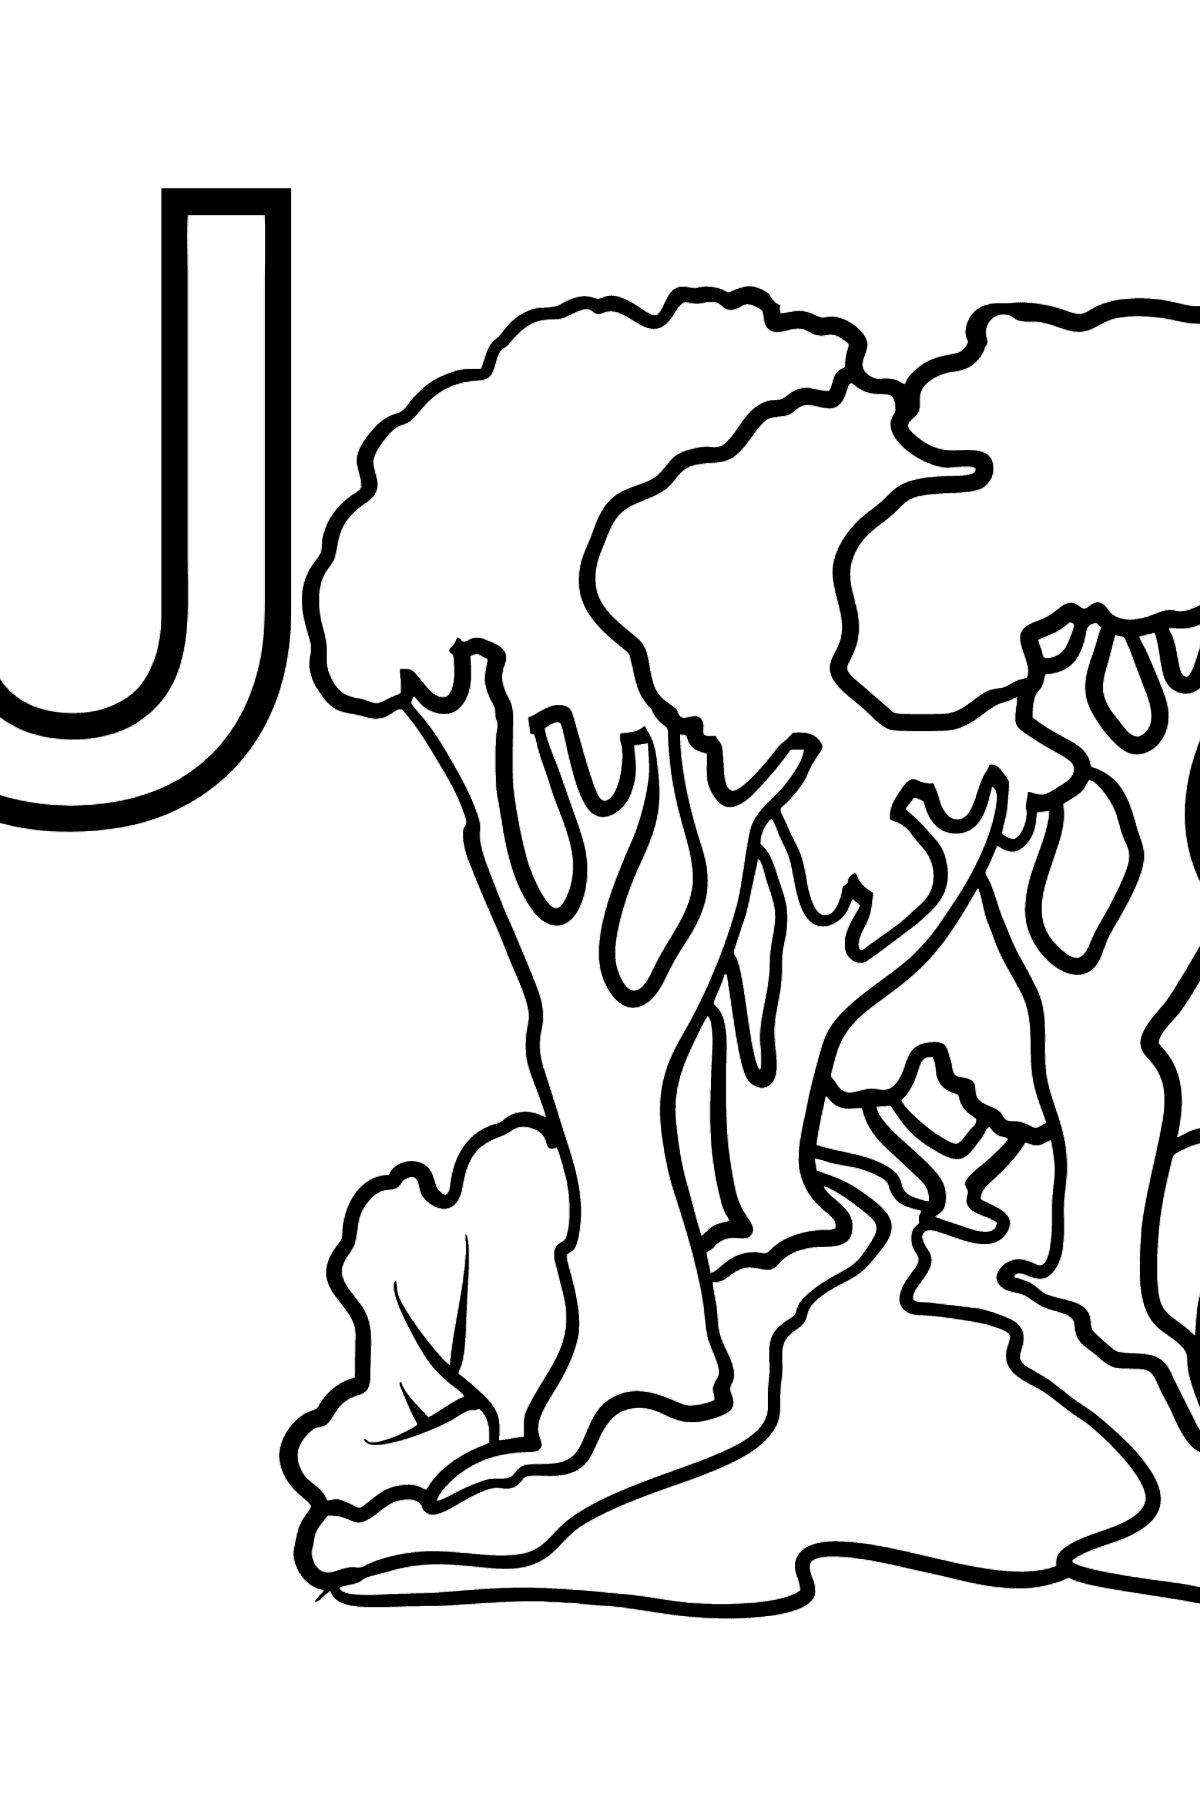 French Letter J coloring pages - JARDIN - Coloring Pages for Kids